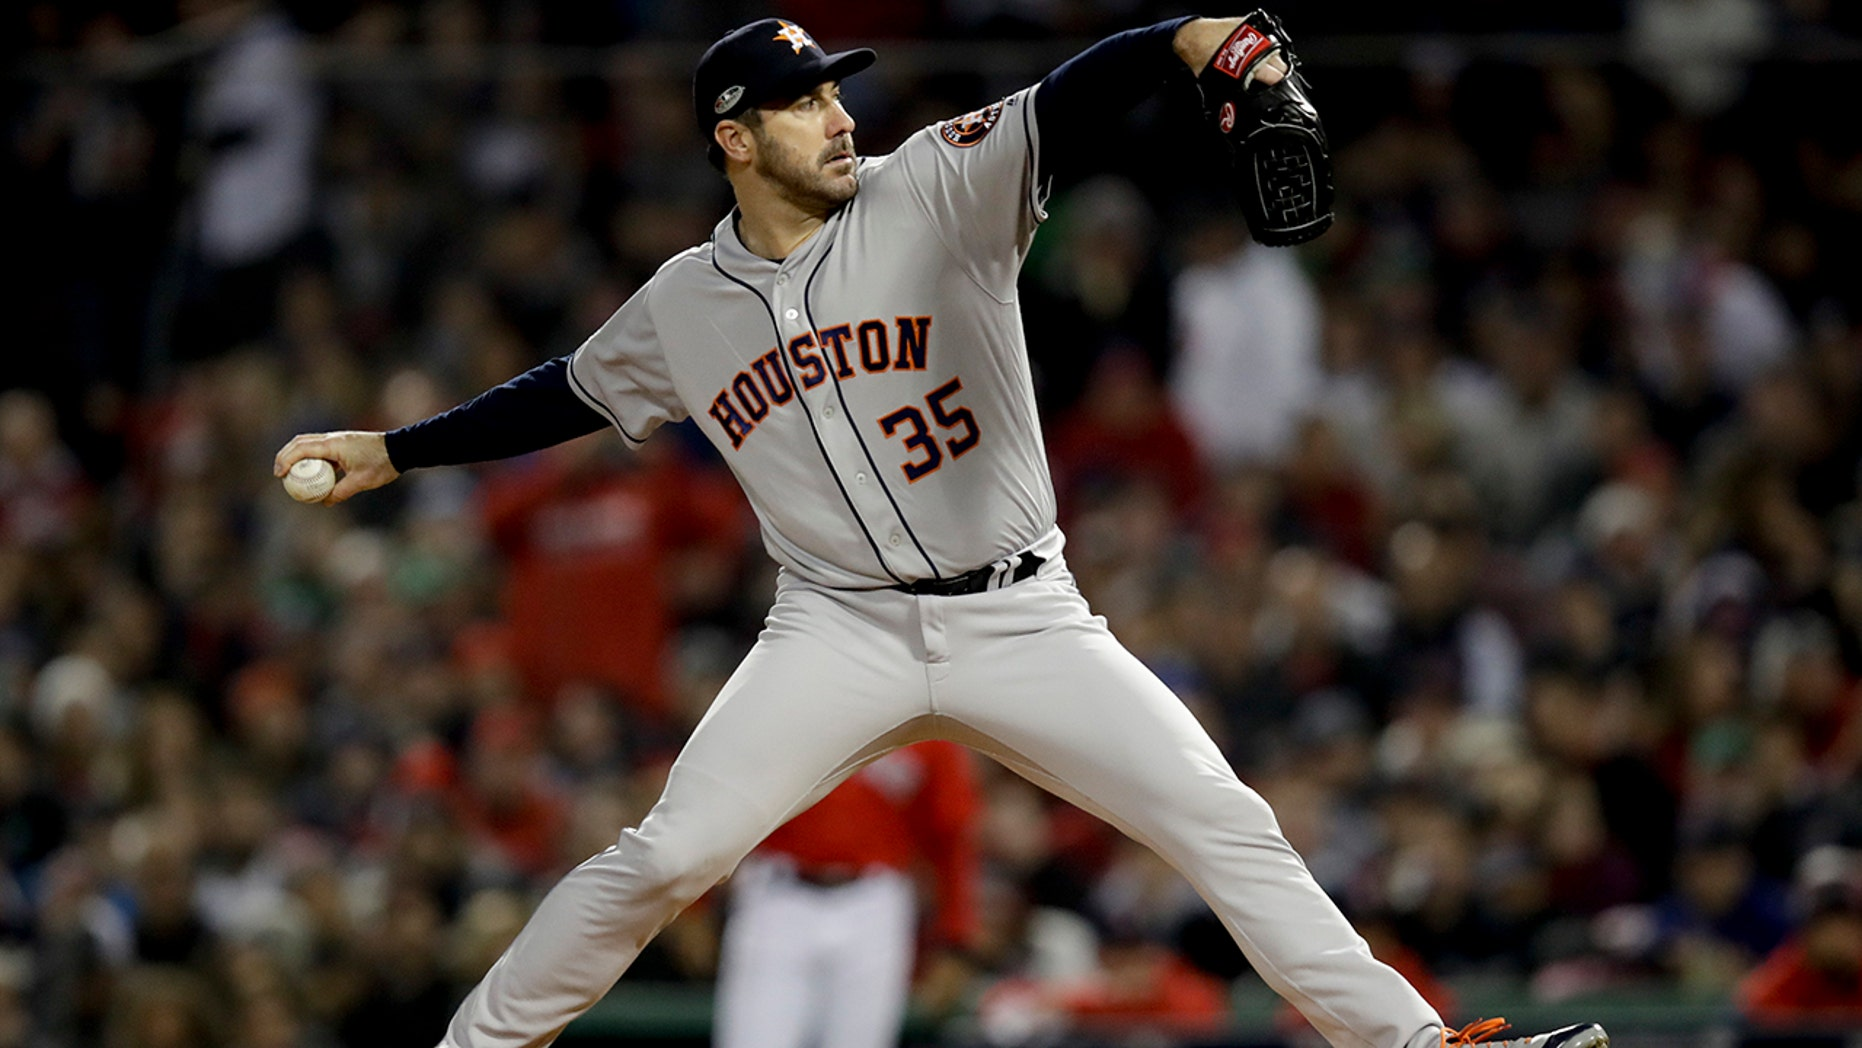 Getty Images Astros take on Red Sox in ALCS Game 2